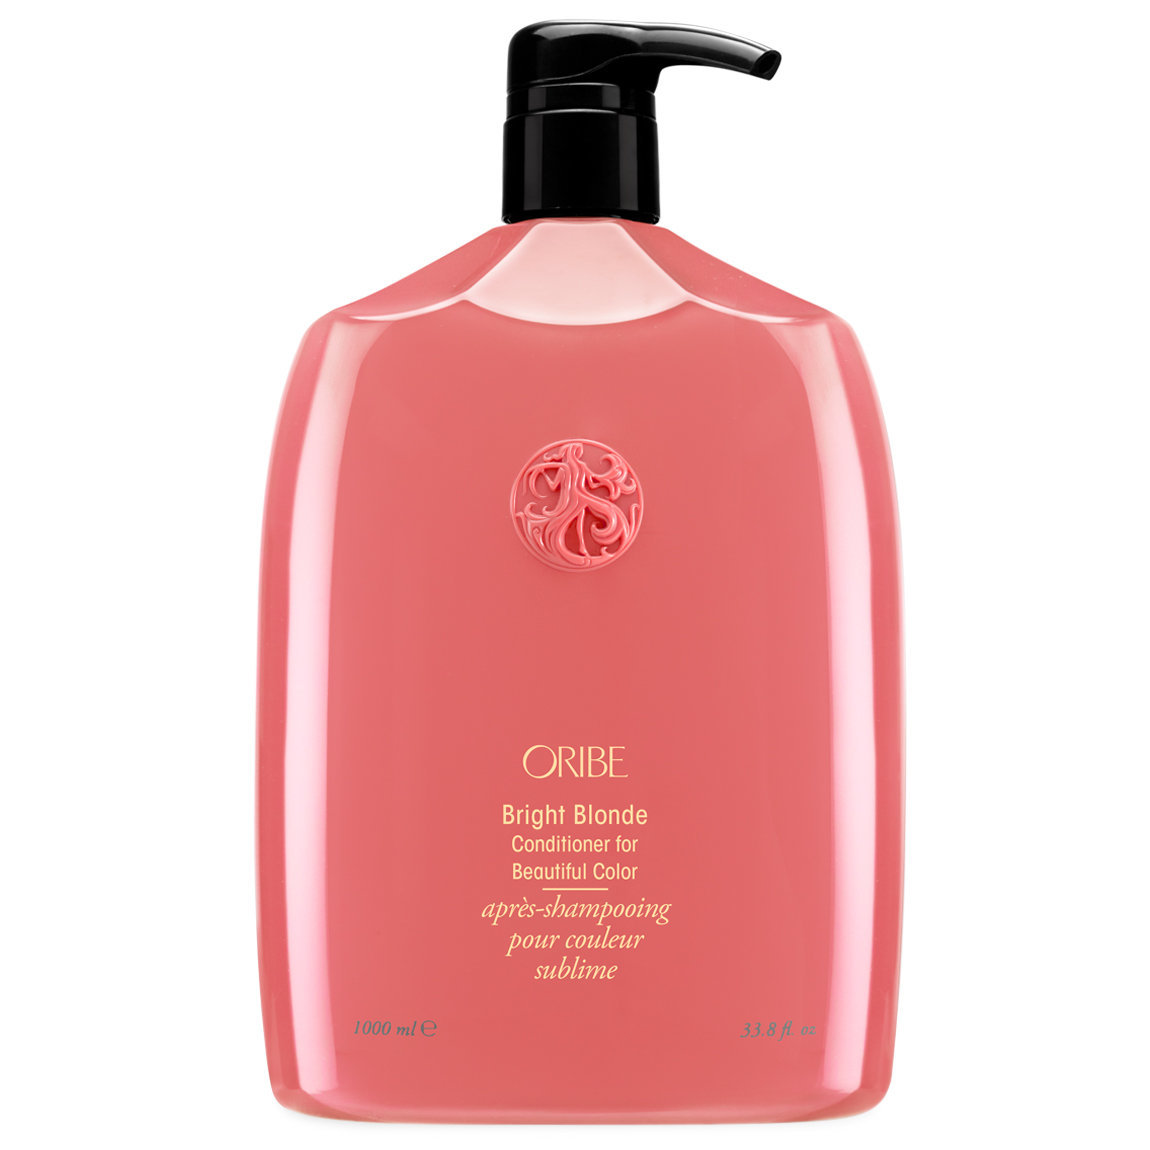 Oribe Bright Blonde Conditioner for Beautiful Color 1 L alternative view 1 - product swatch.